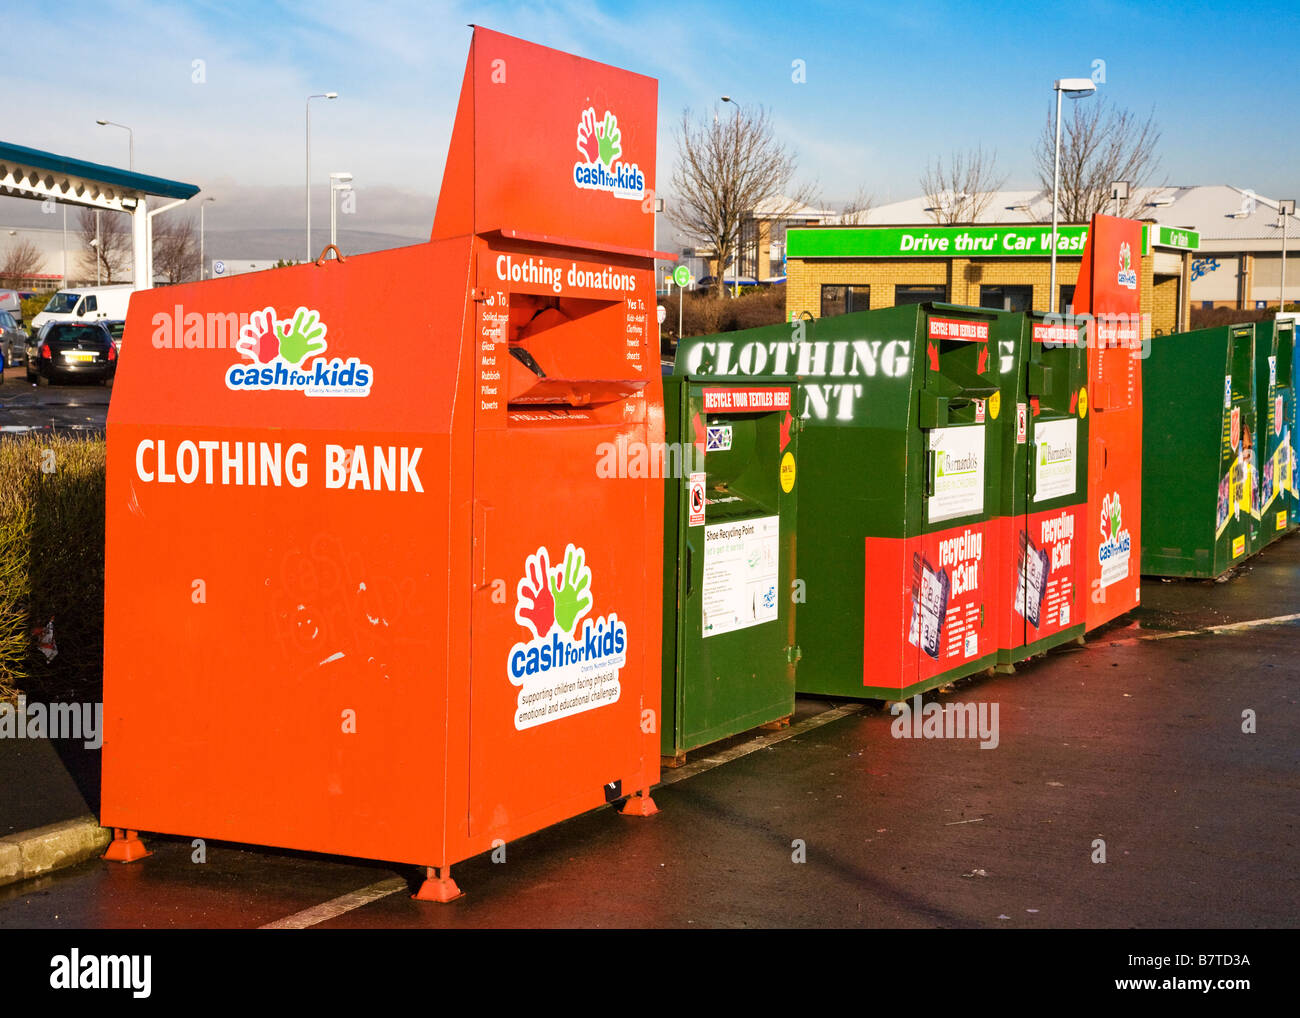 A Bank of recycling bins in a supermarket car park. Stock Photo